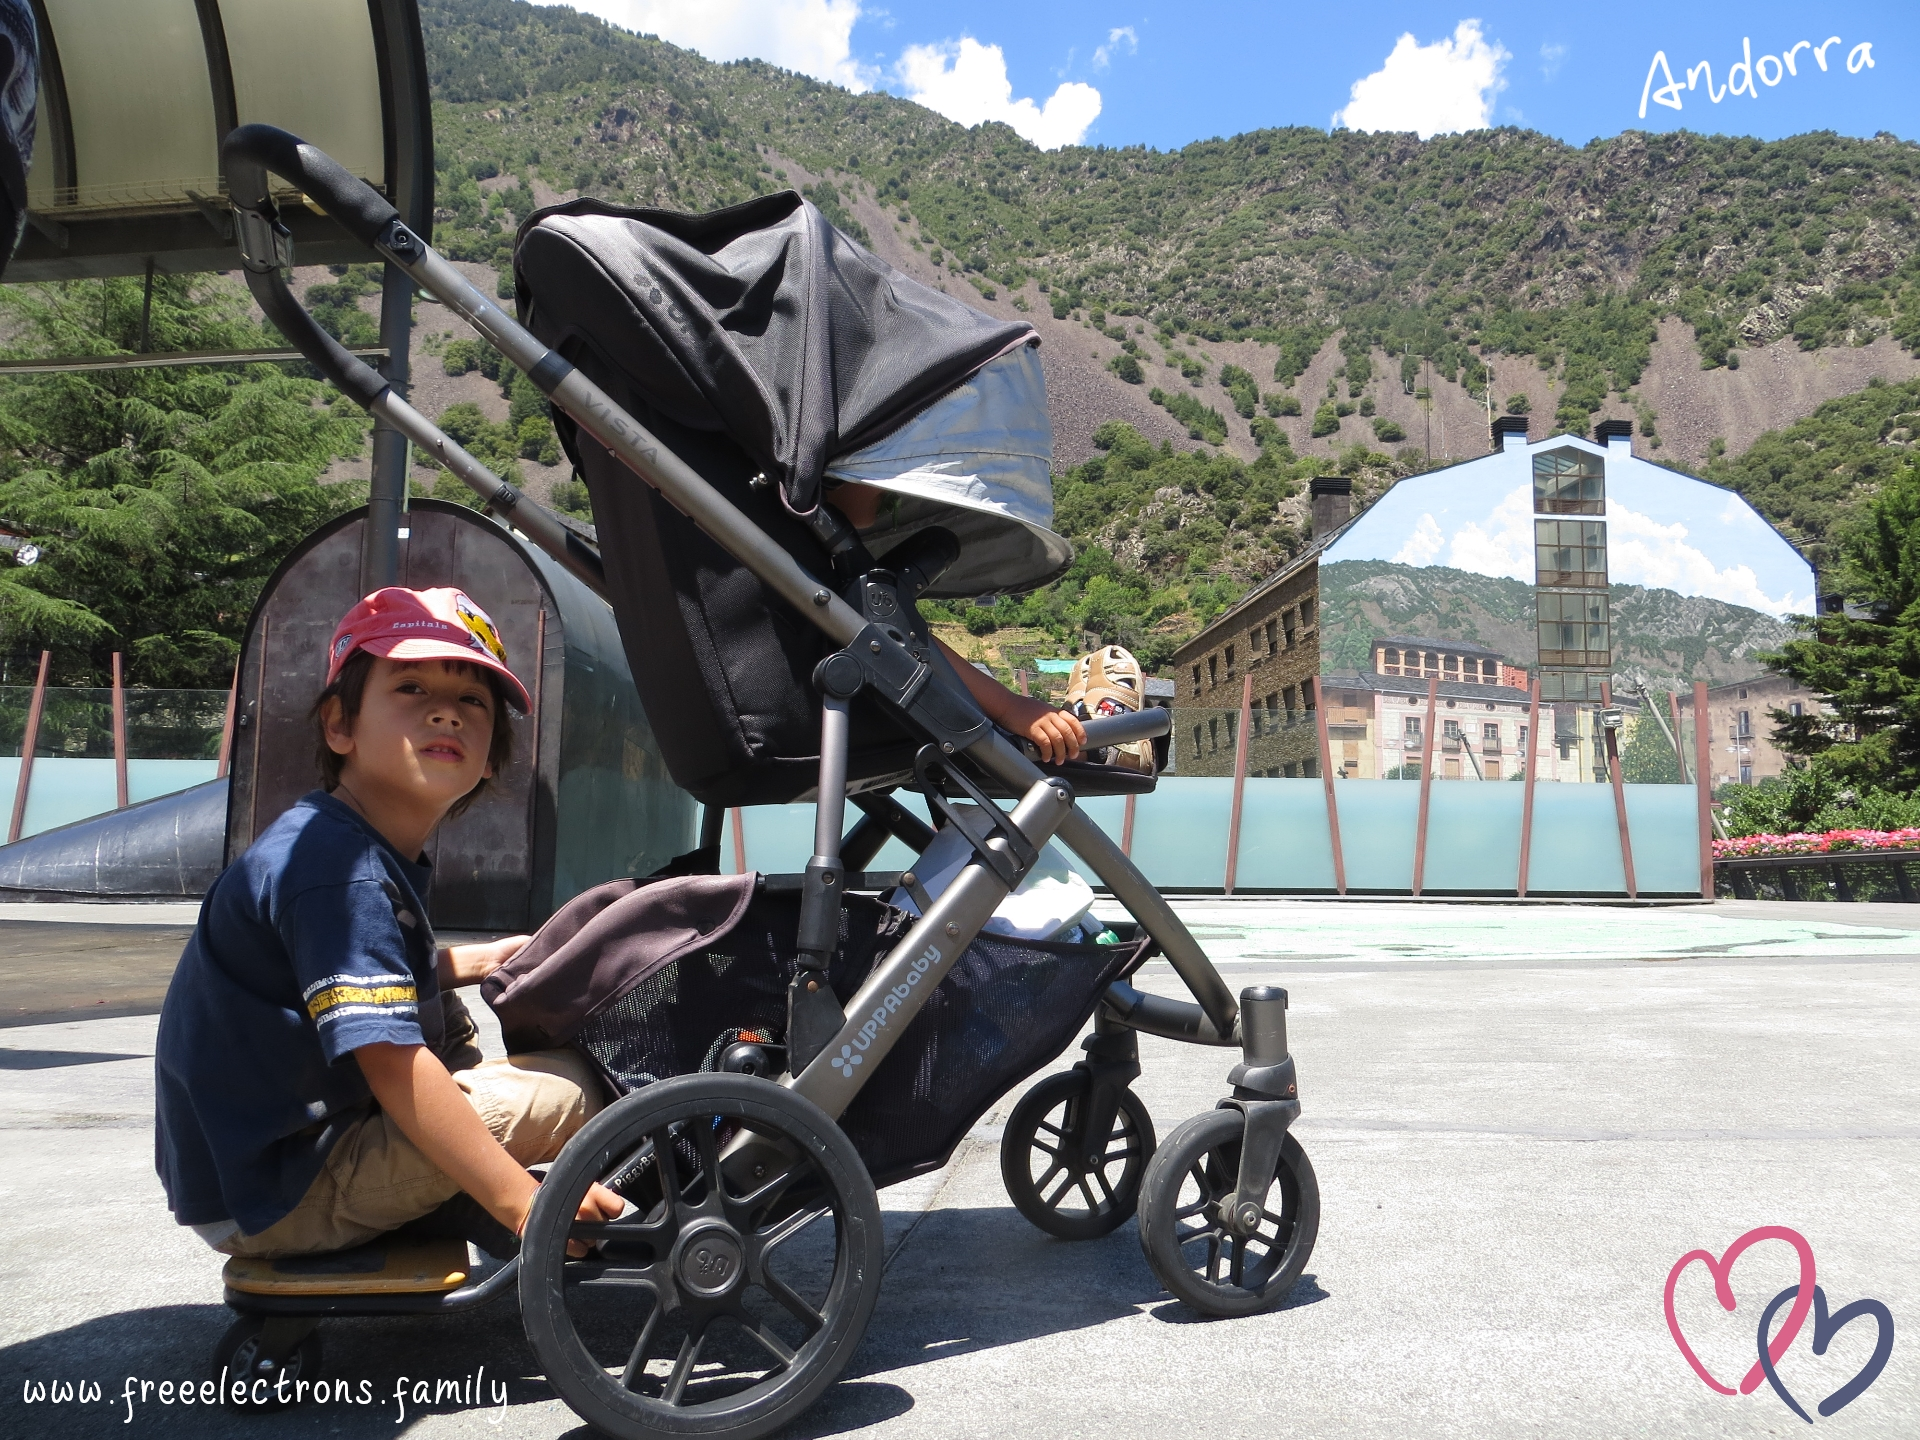 #FreeElectrons.Family - camping road trip Europe, UPPAbaby, kids chilling in Andorra.  Two young kids resting on an UPPAbaby VISTA stroller/pram at an empty plaza.  The older one  is sitting on the piggyback ride along board, looking past the camera.  The other one in the rumble seat.  A building with a landscape painting that blends in the background of green-patched mountain and, above, blue skies with white patches of clouds.  Text reads: Andorra; www.freeelectrons.com